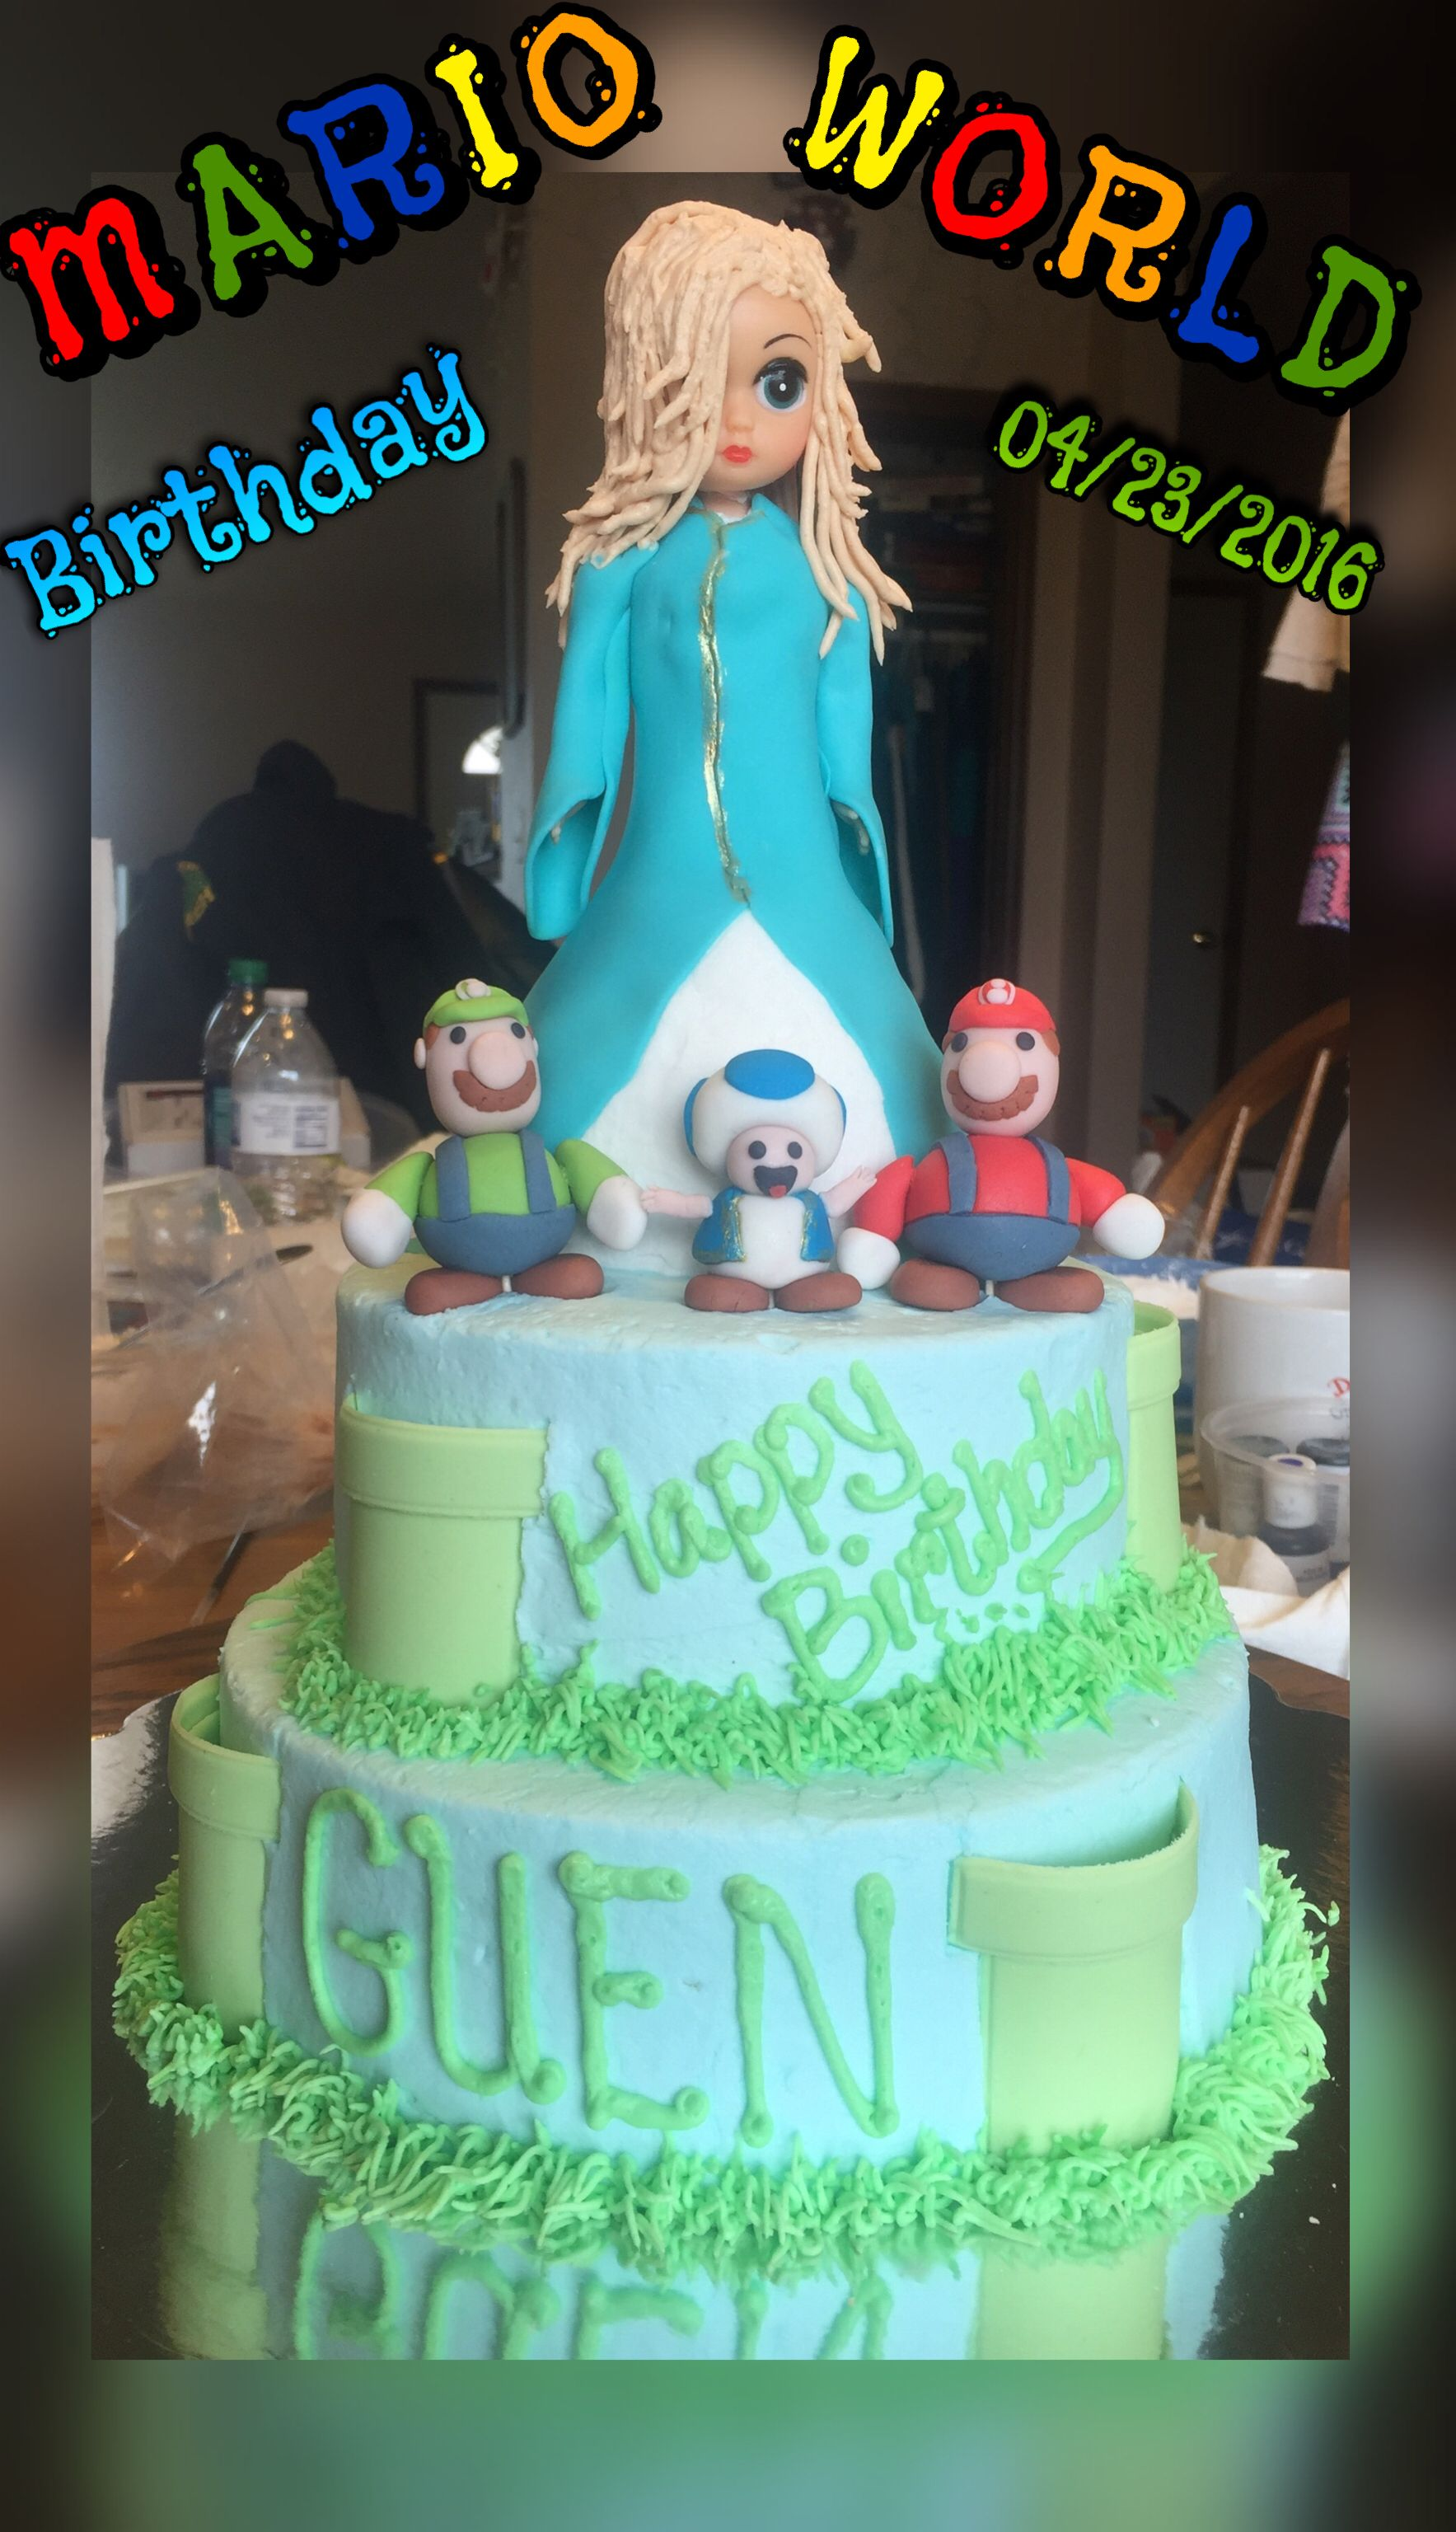 Pin By Gina Newman Atchison On My Cakes Pinterest Cake